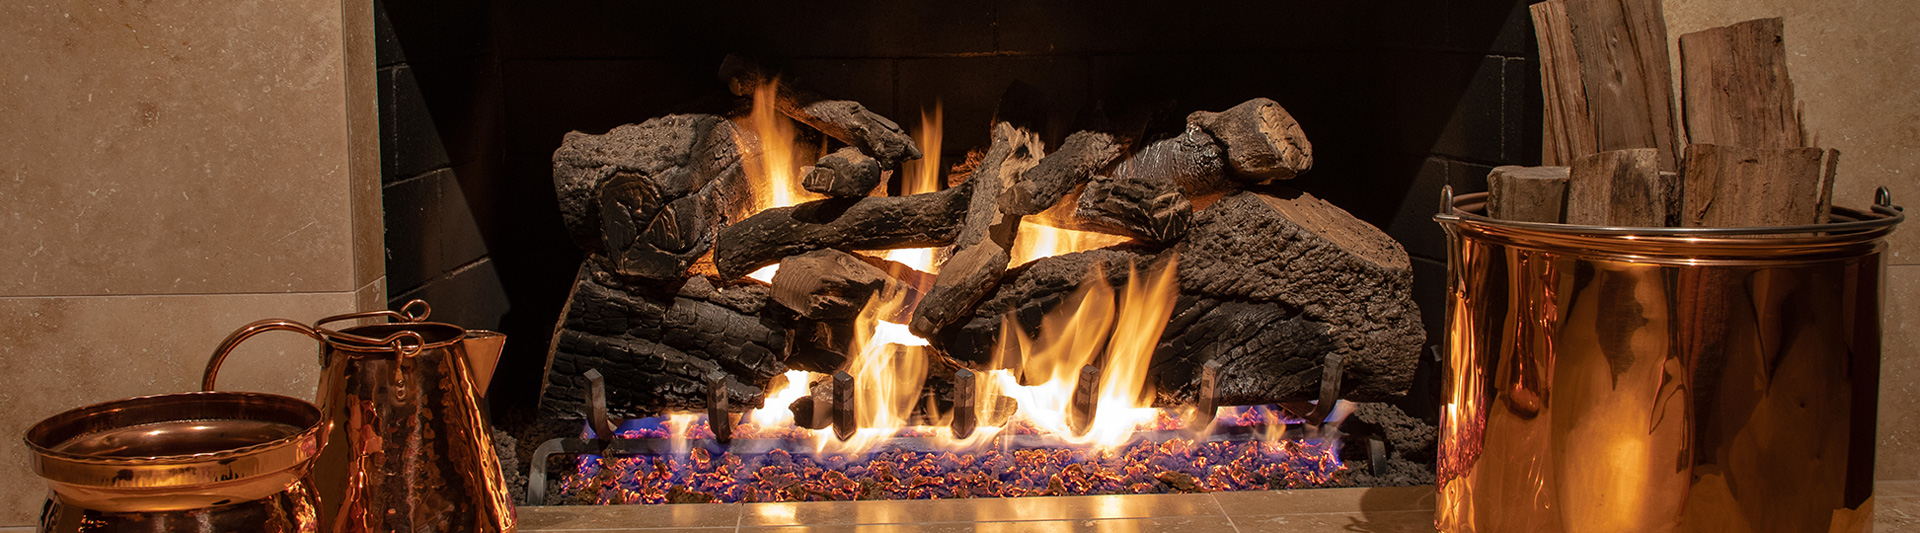 Benson Stone sells gas logs for your gas fireplace